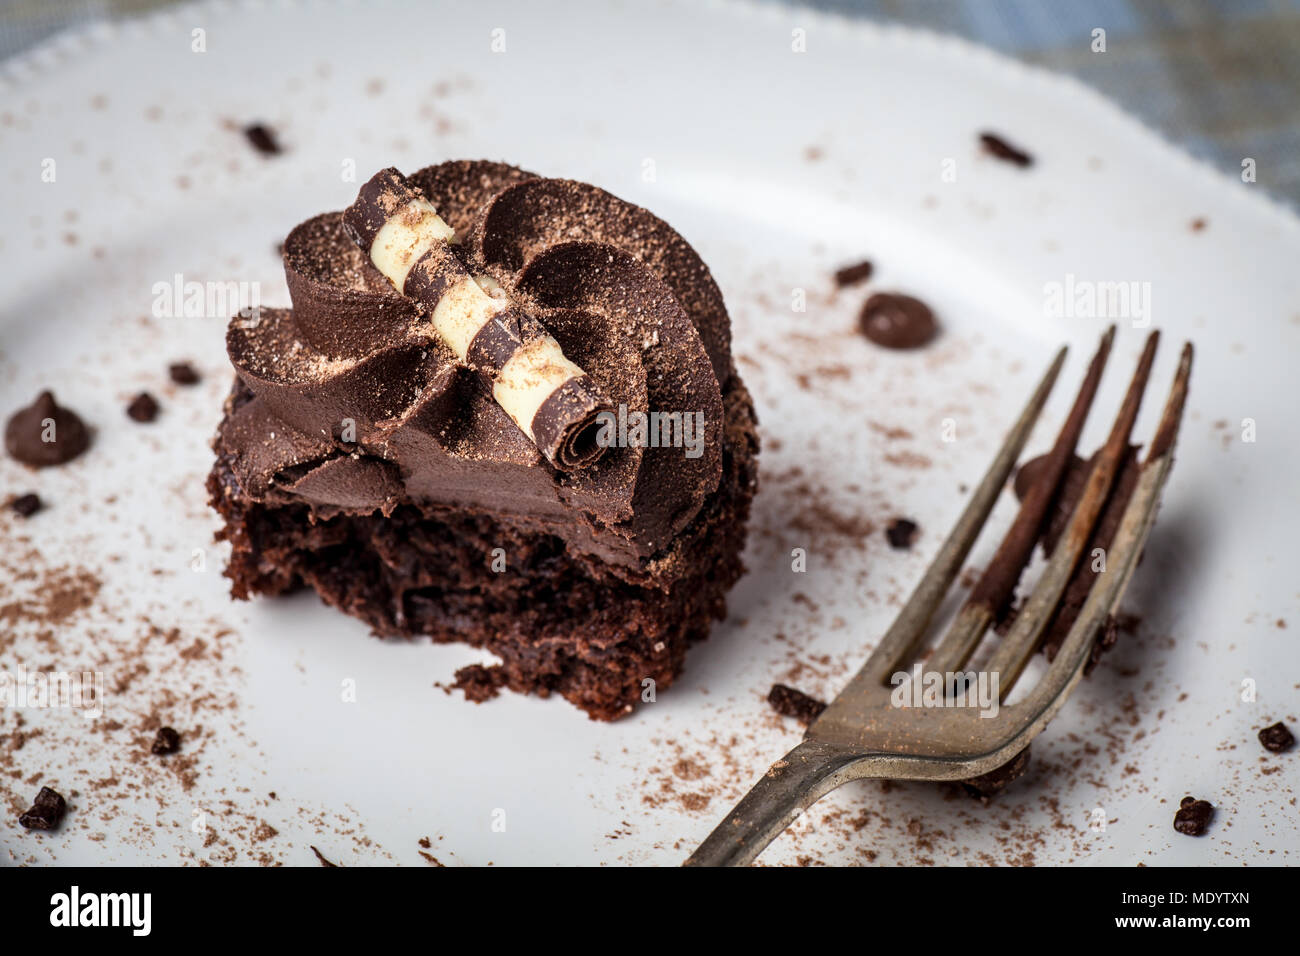 Chocolate cupcake on white plate with fork, dusted with cocoa powder and chocolate sprinkles, half eaten - Stock Image